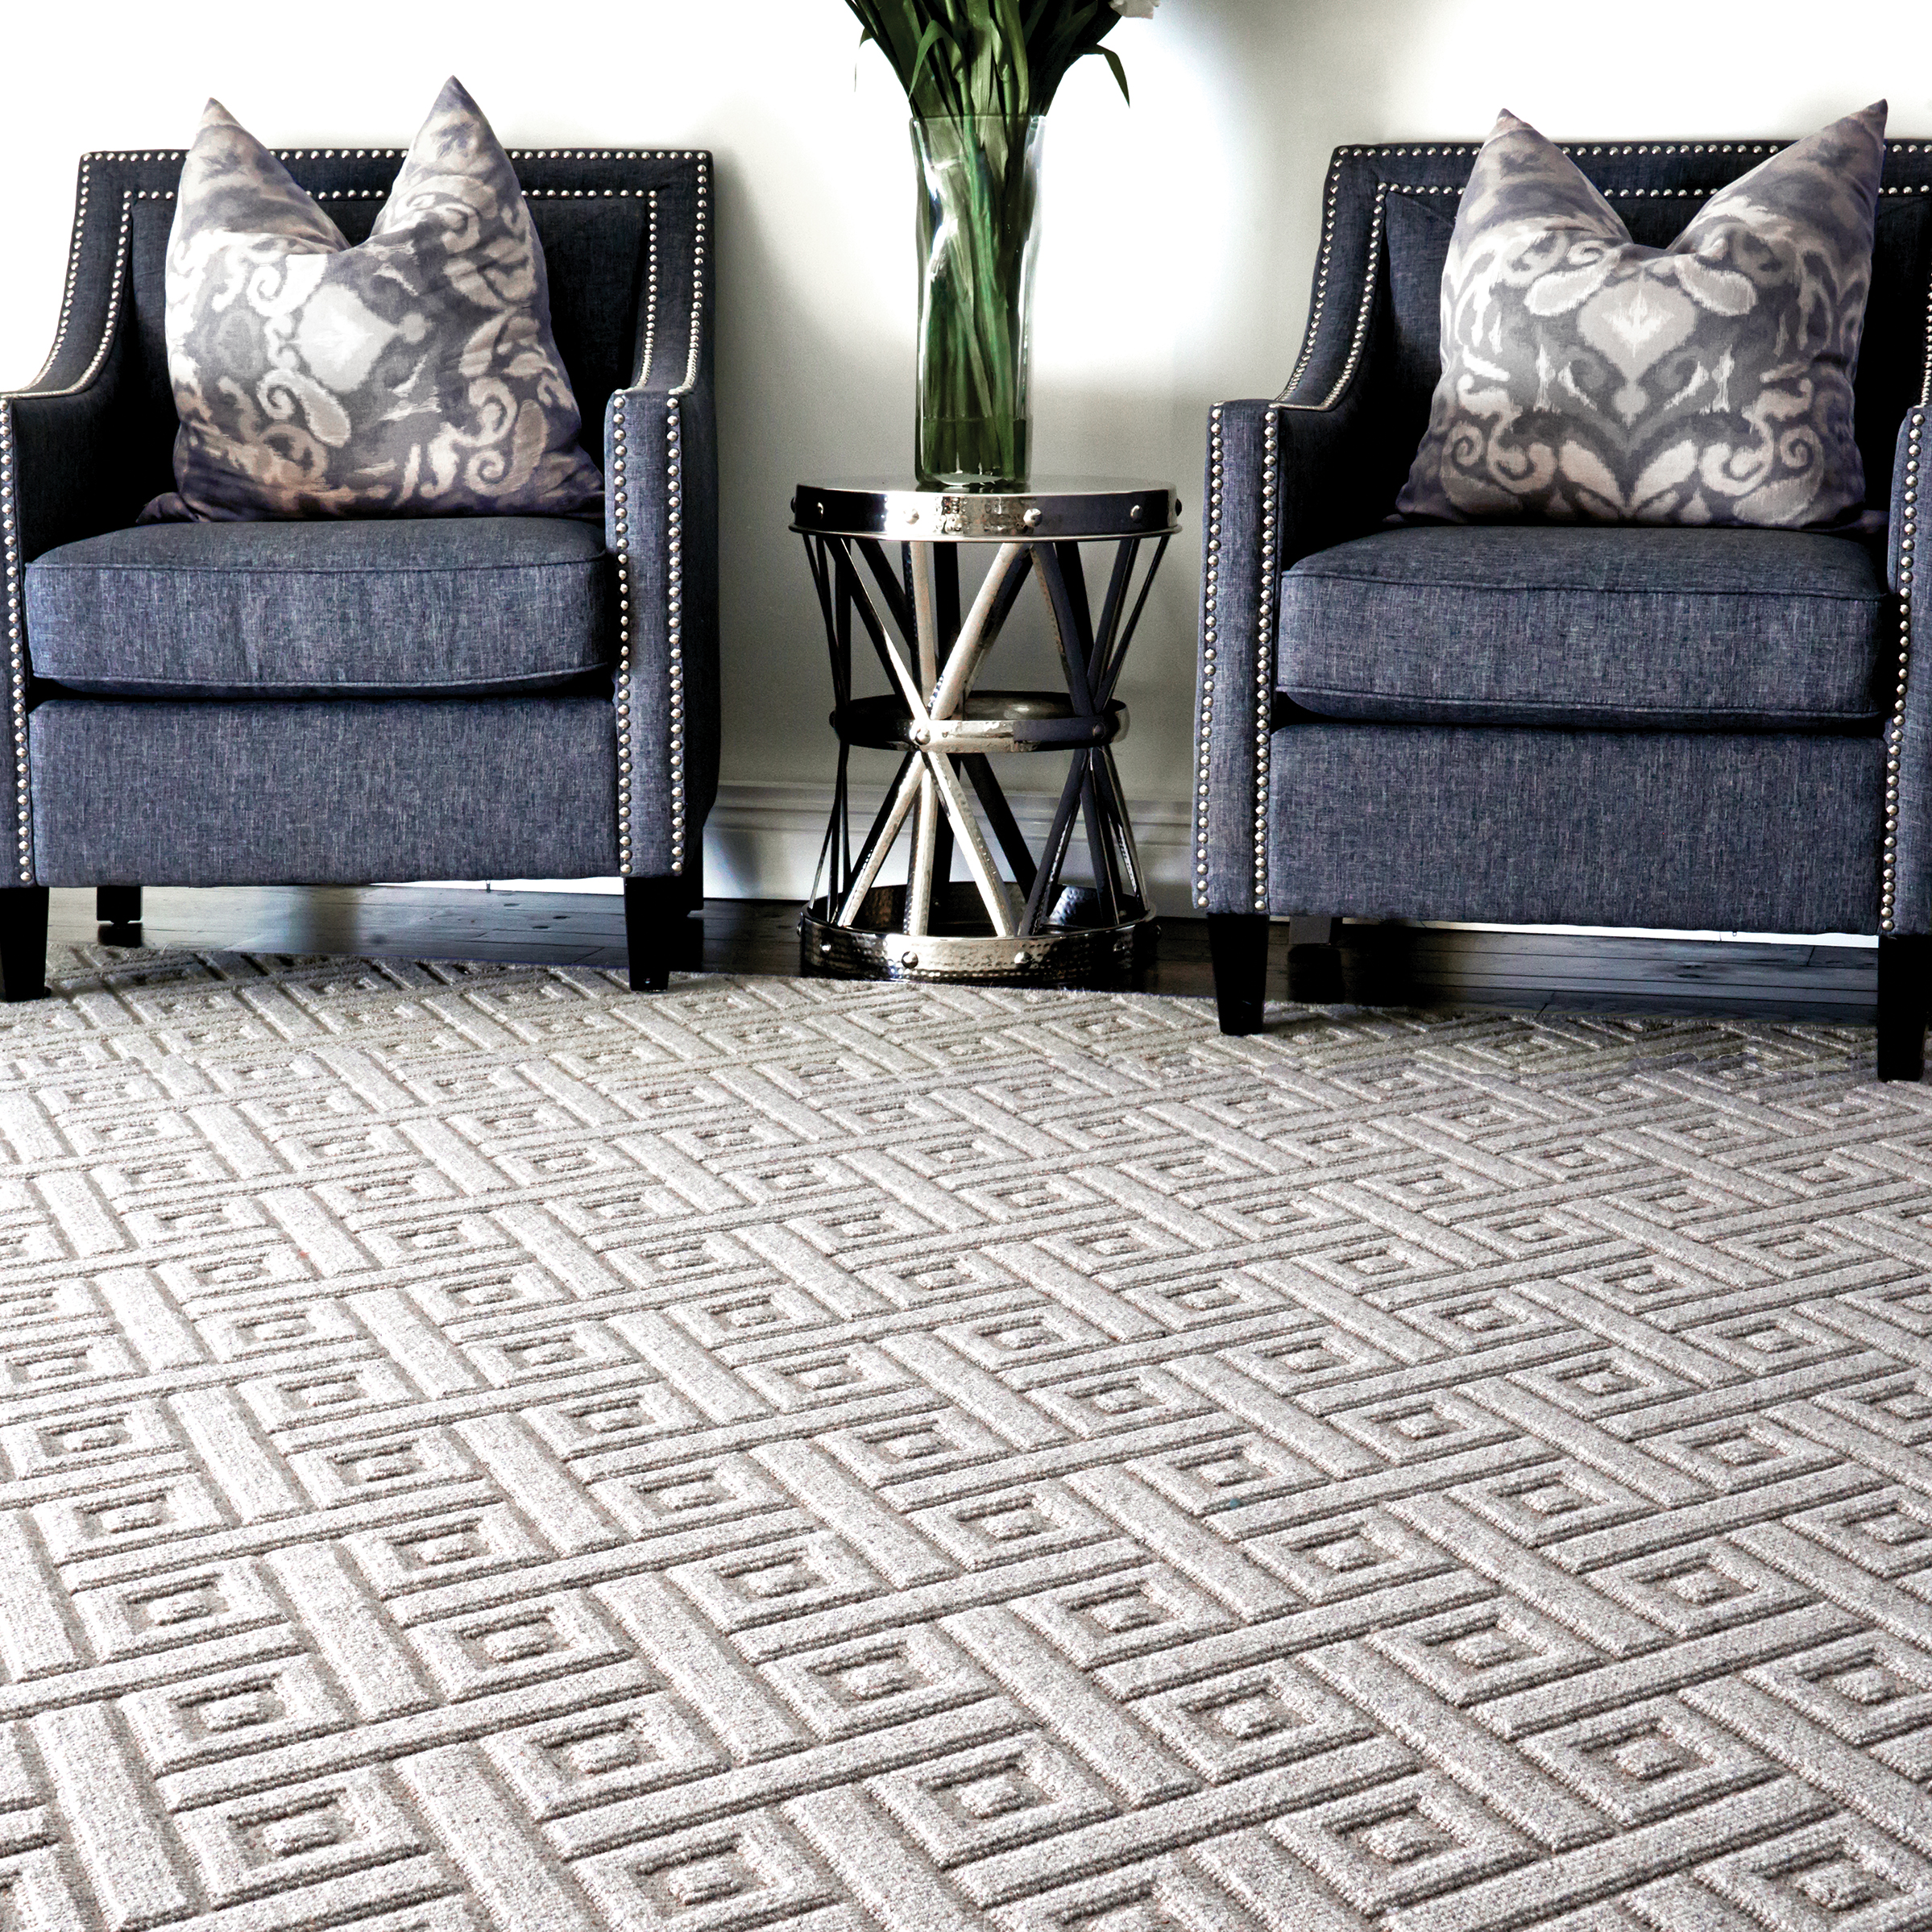 Geometric patterns can be achieved through texture or color. No matter how this look is created, these modern carpets add a beautiful and sophisticated look to your home.